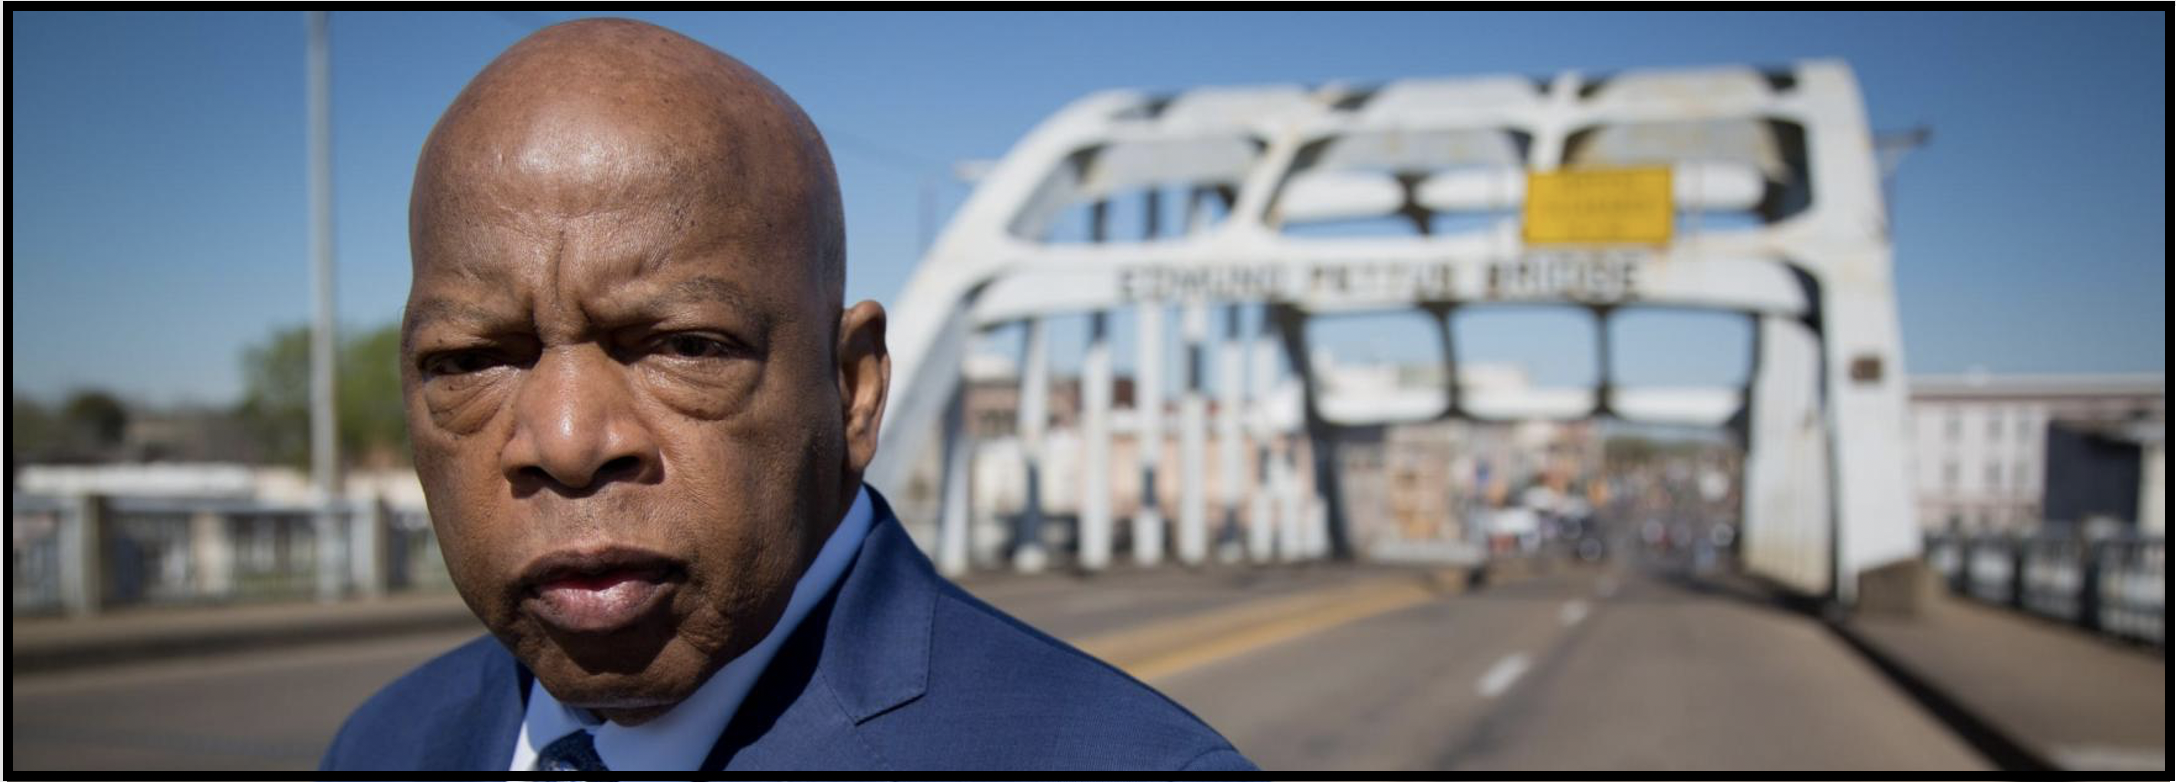 John Lewis was a proud advocate for voting rights throughout his life.